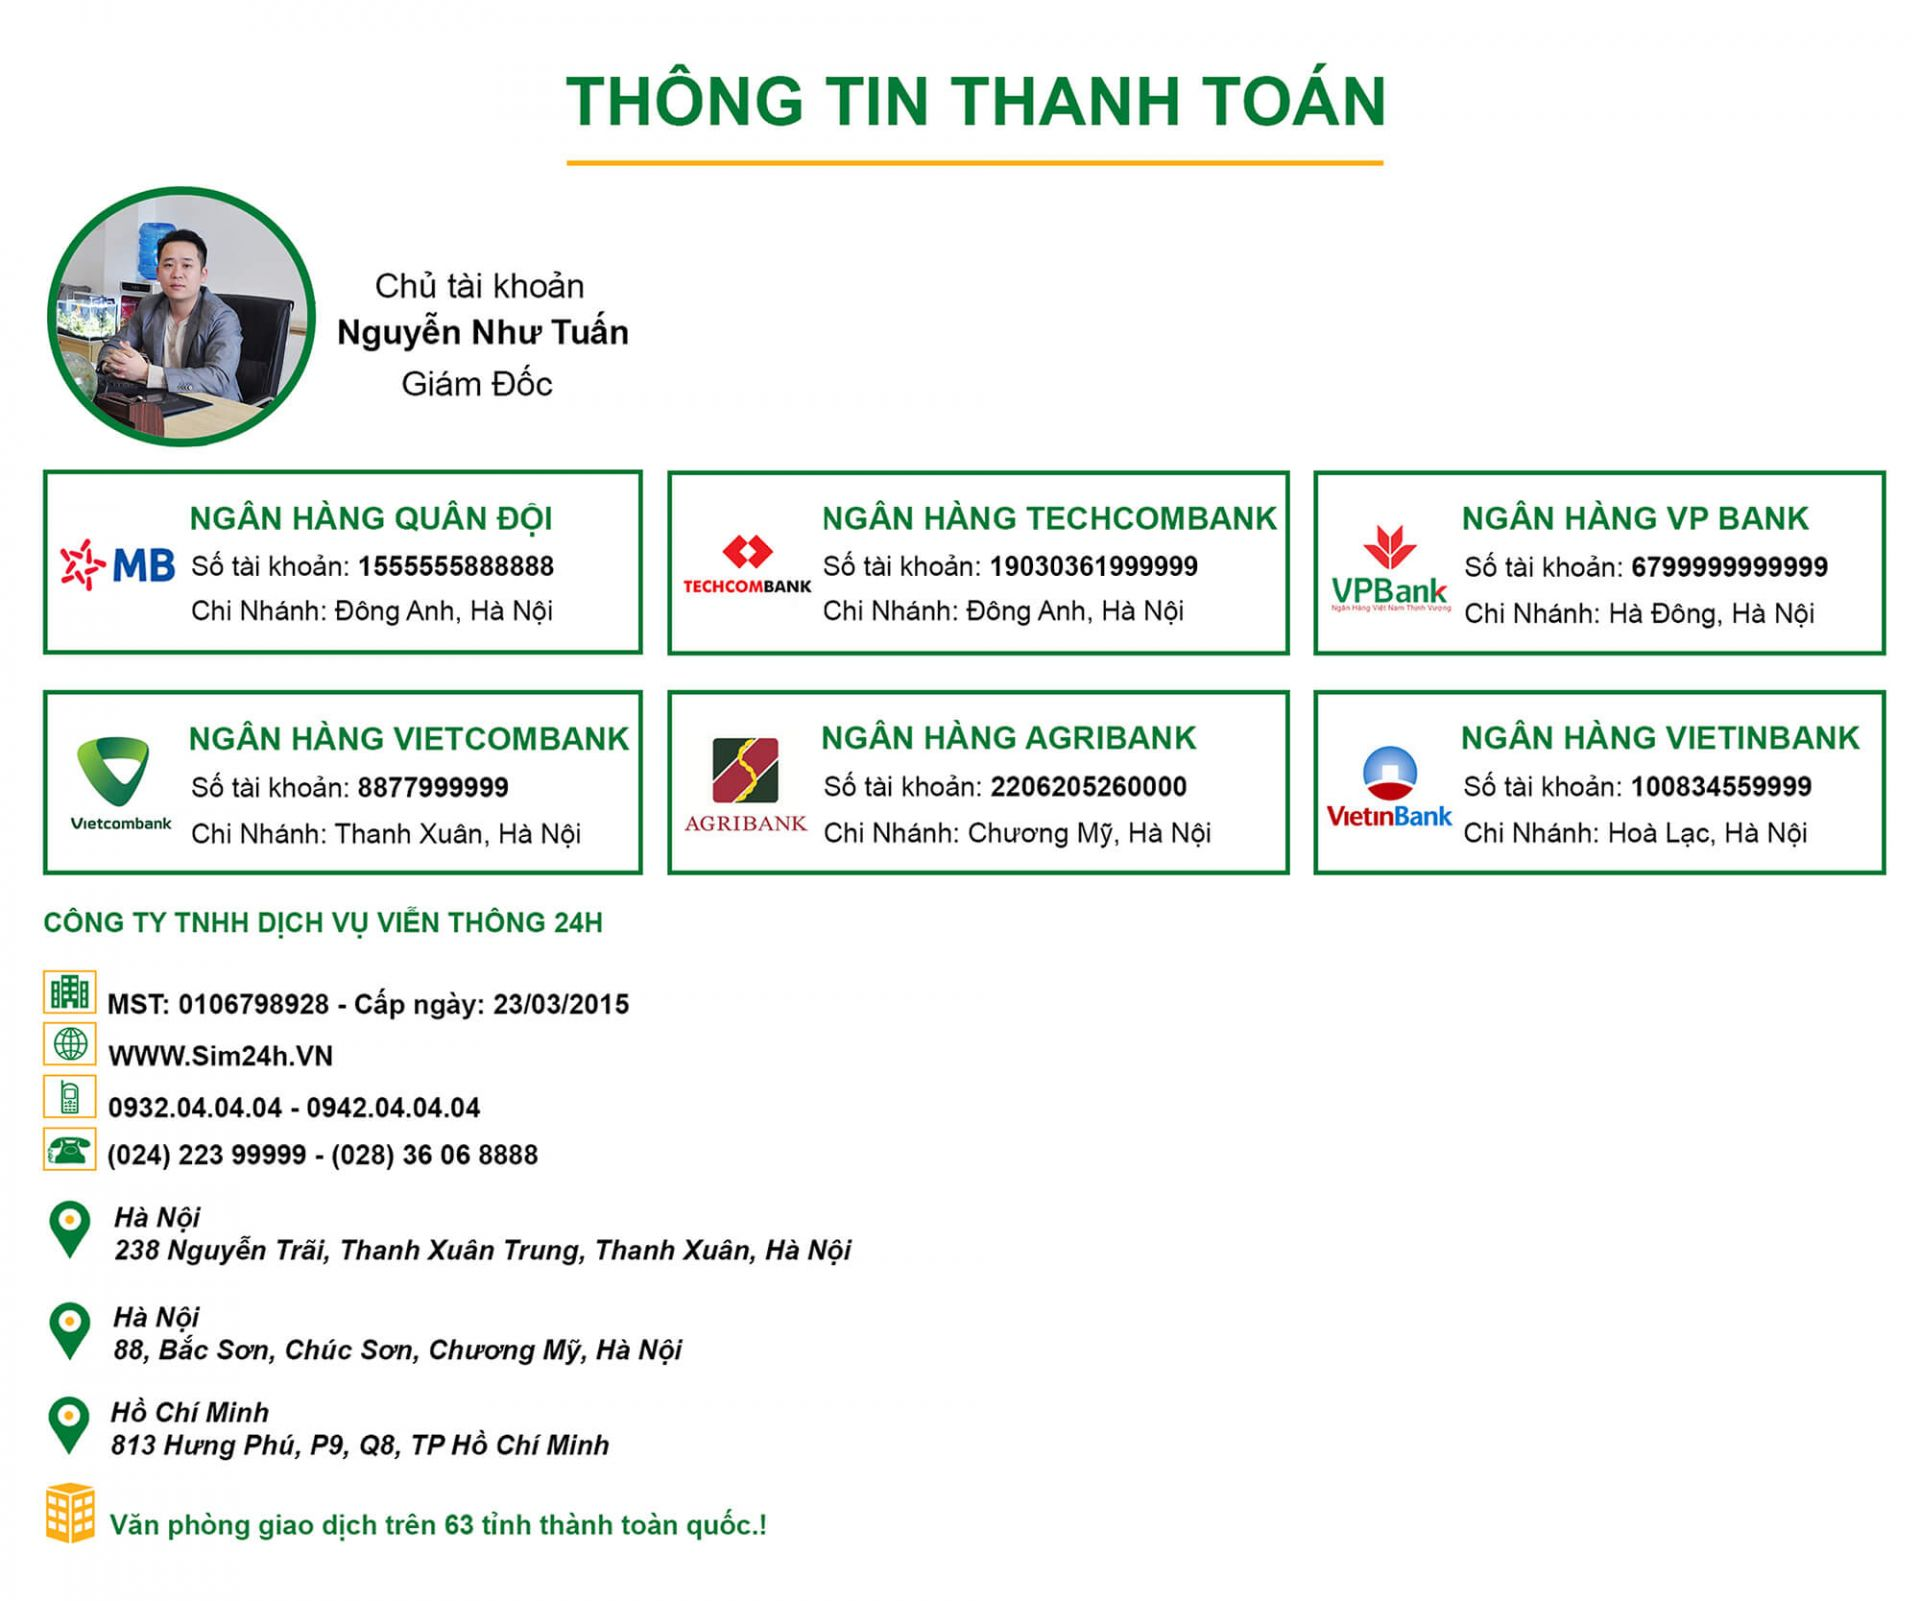 thanh-toan_1